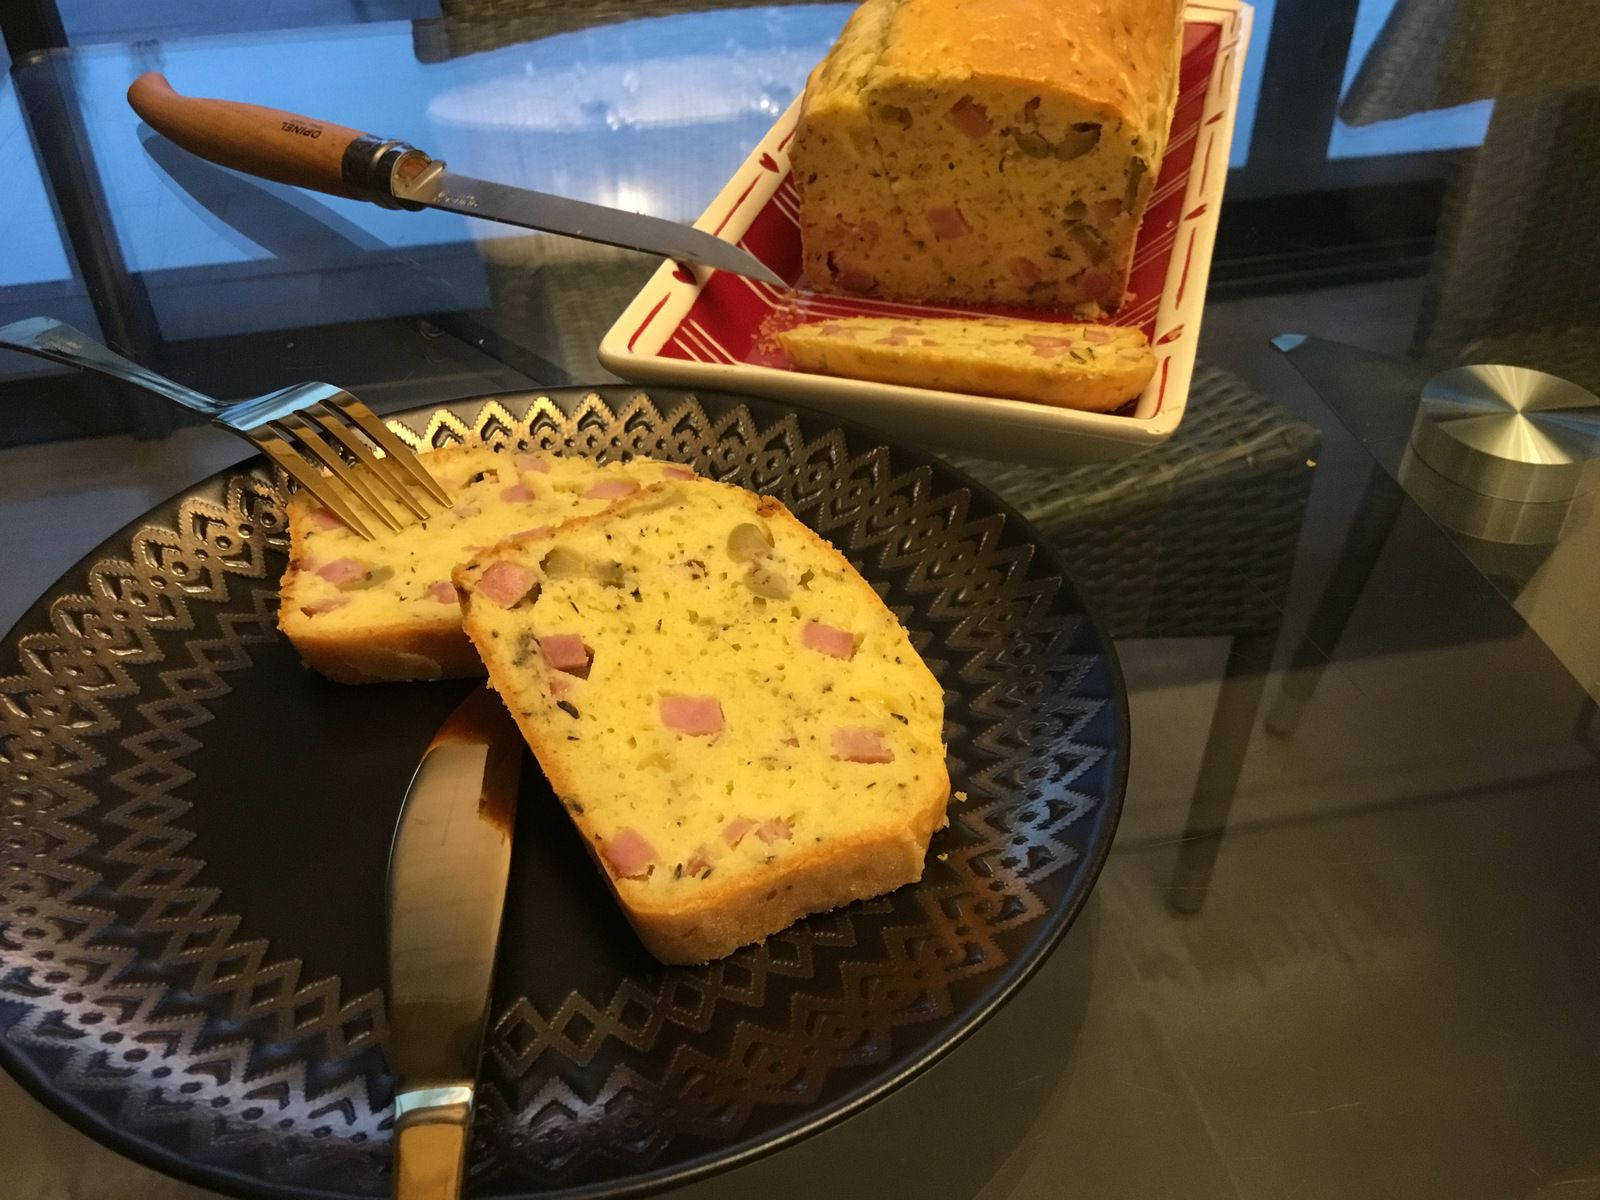 Cake jambon, olives, fromage